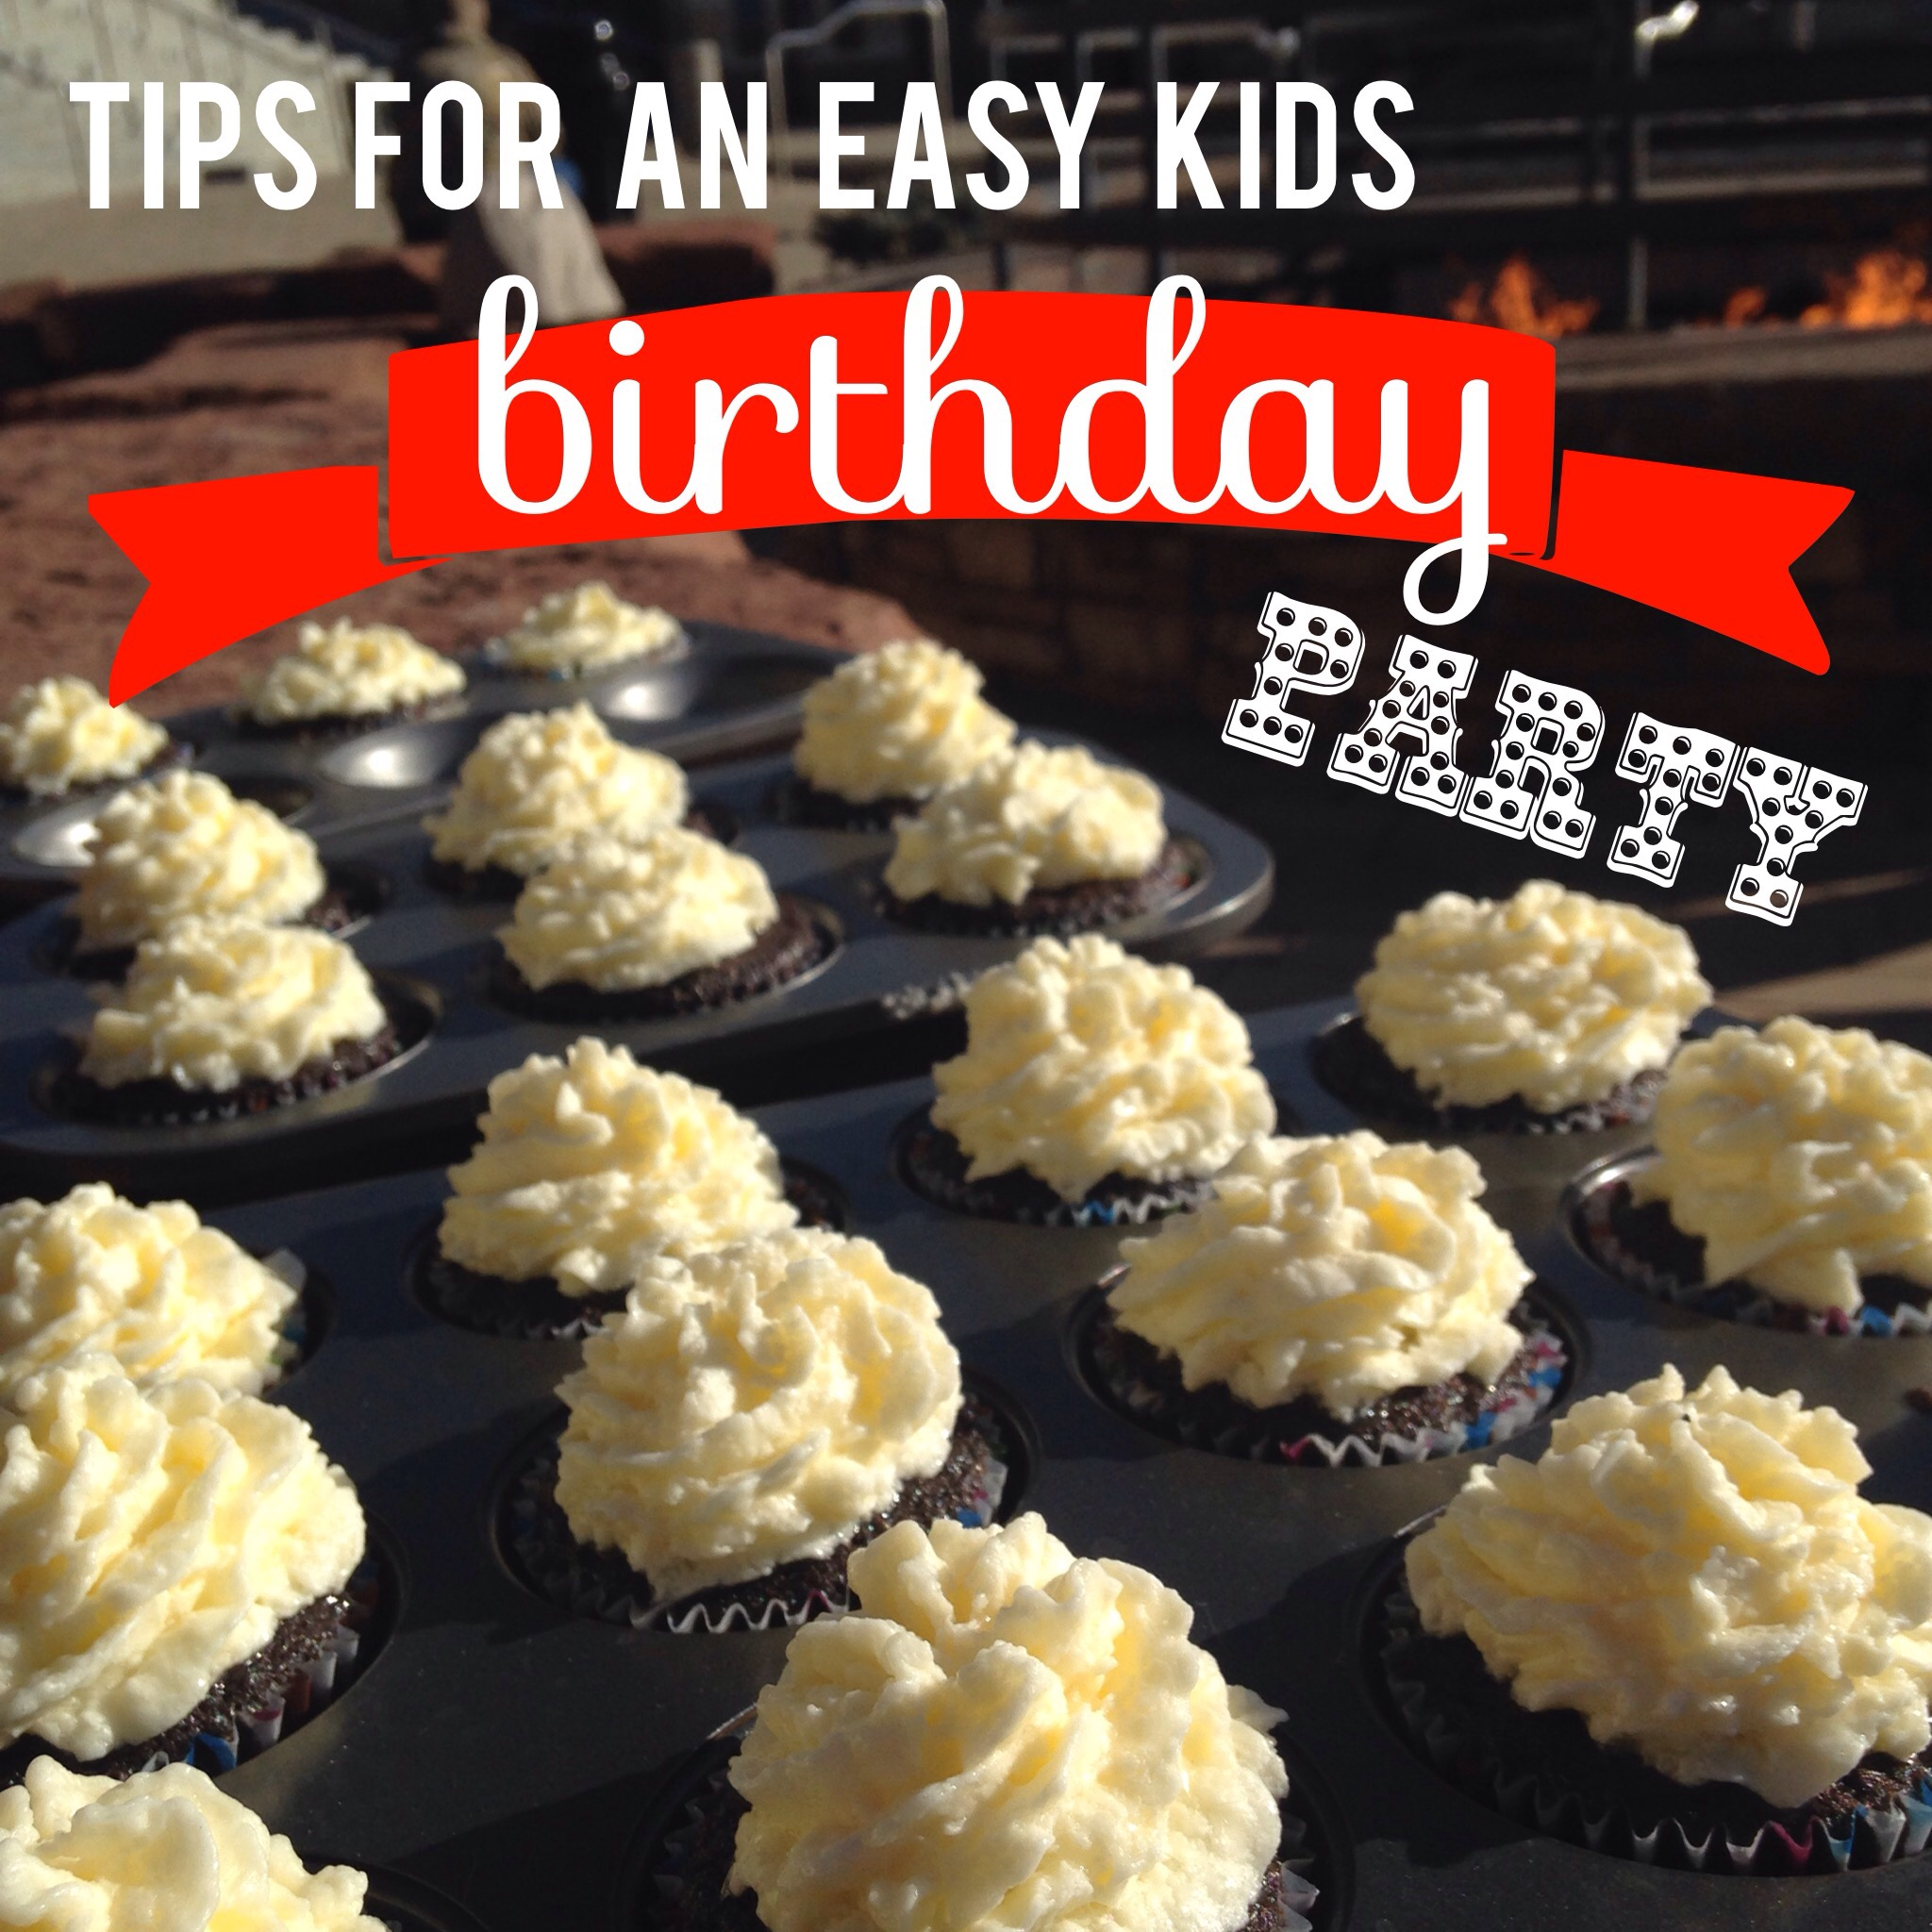 tips for an easy kids birthday party